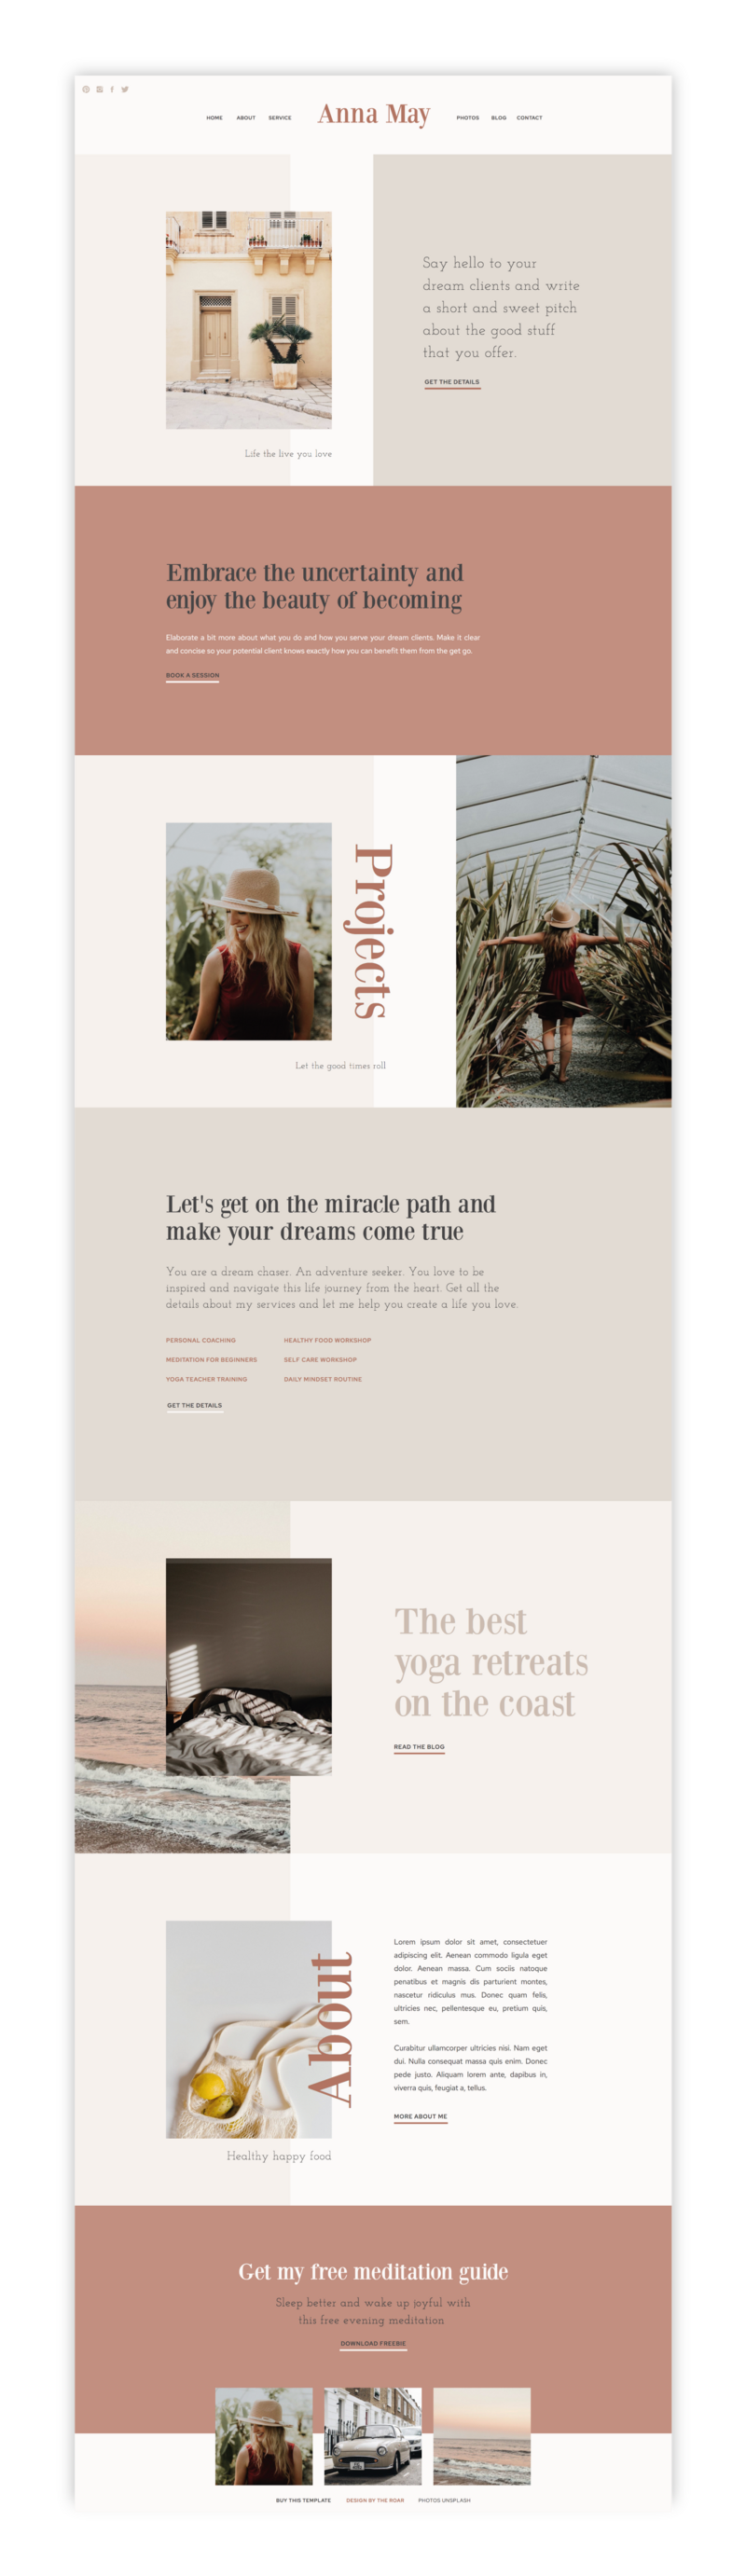 The Roar Showit Web Design Website Template Creative Business Layout Anna May